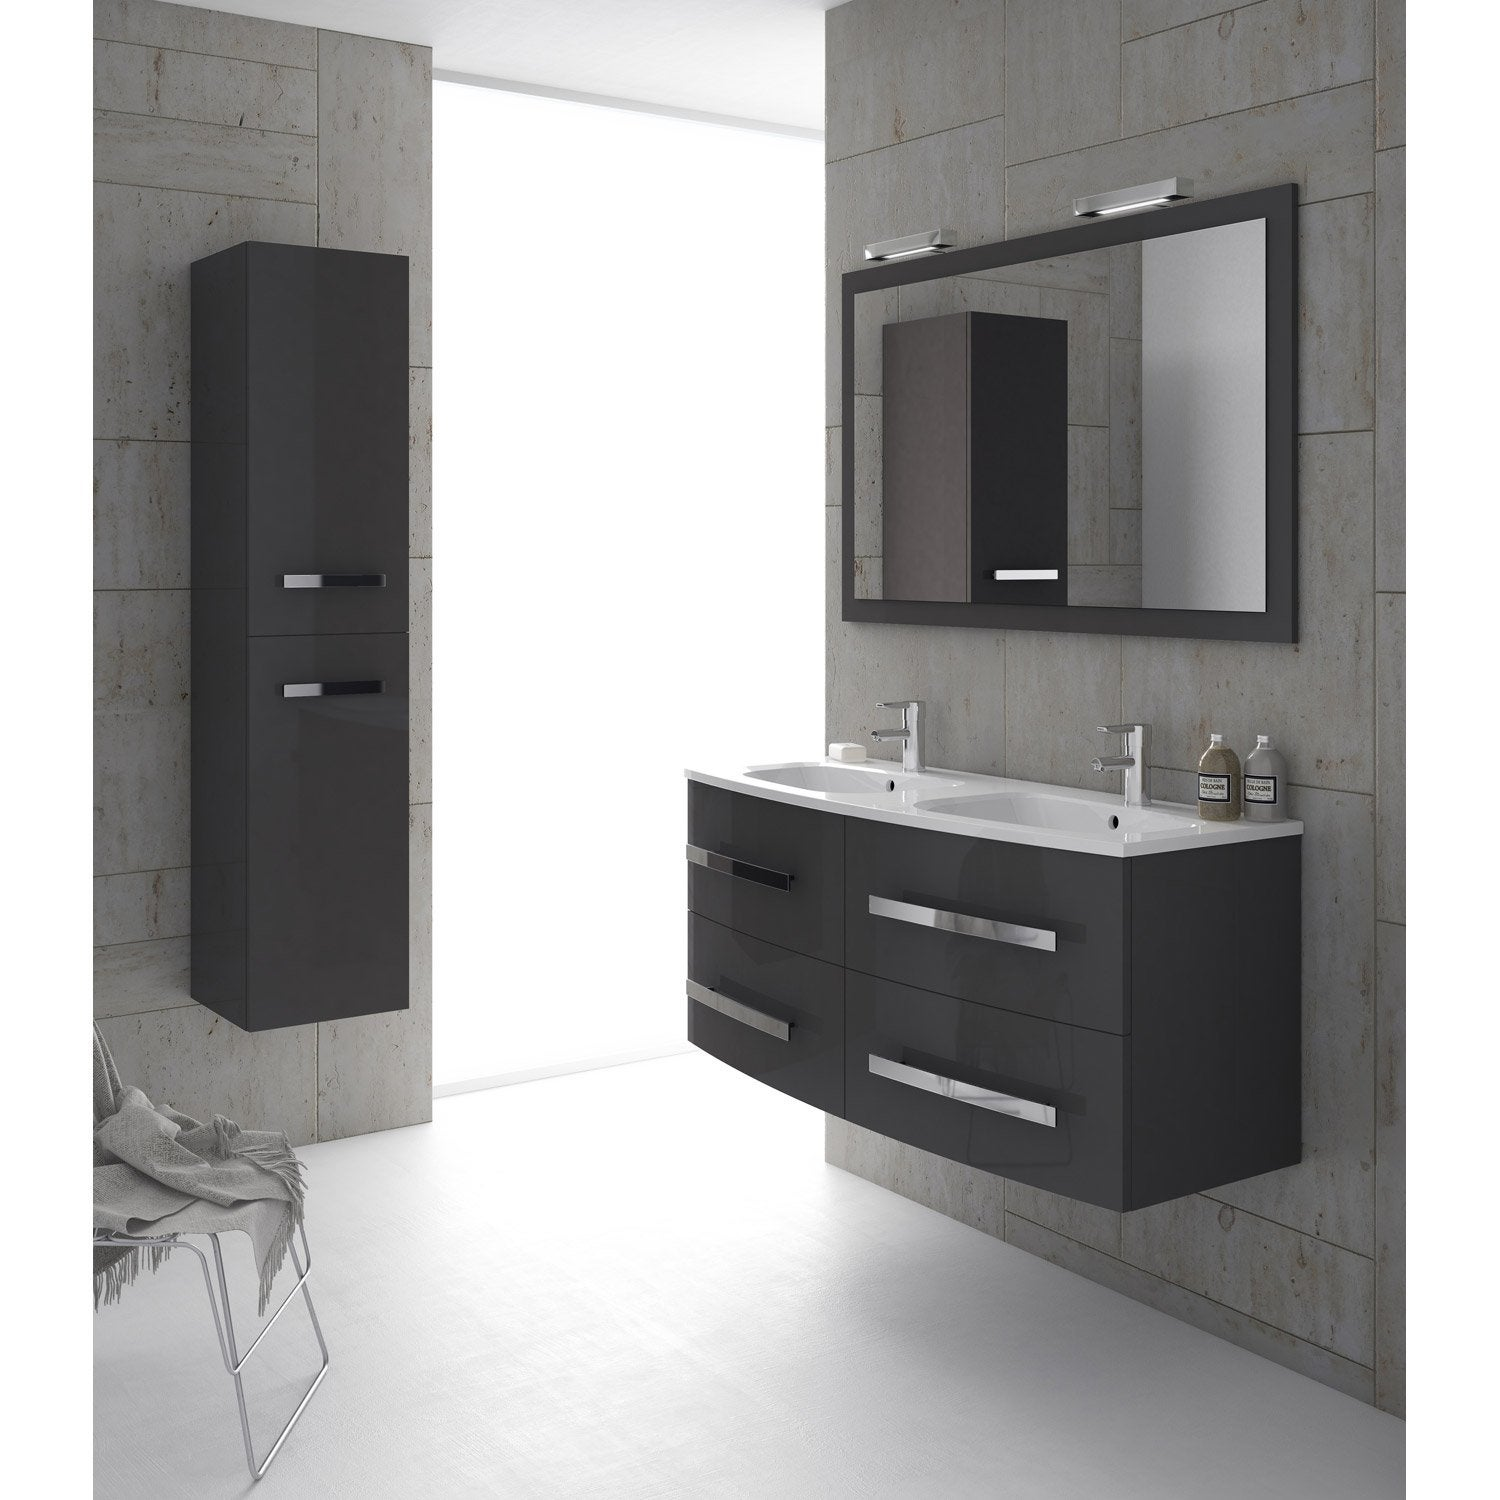 meuble de salle de bains plus de 120 gris argent perla leroy merlin. Black Bedroom Furniture Sets. Home Design Ideas